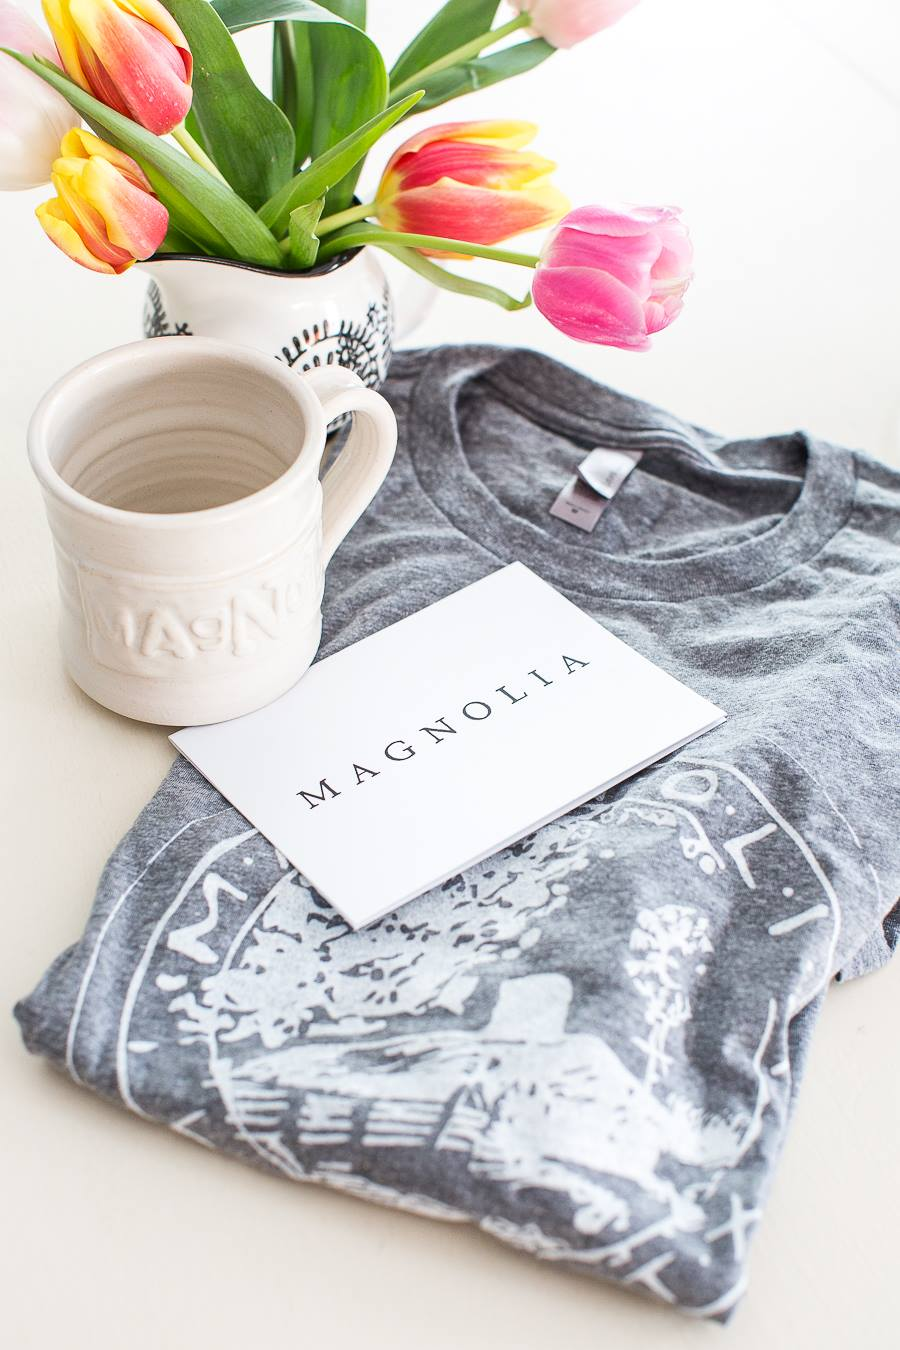 Magnolia Market shirt and mug